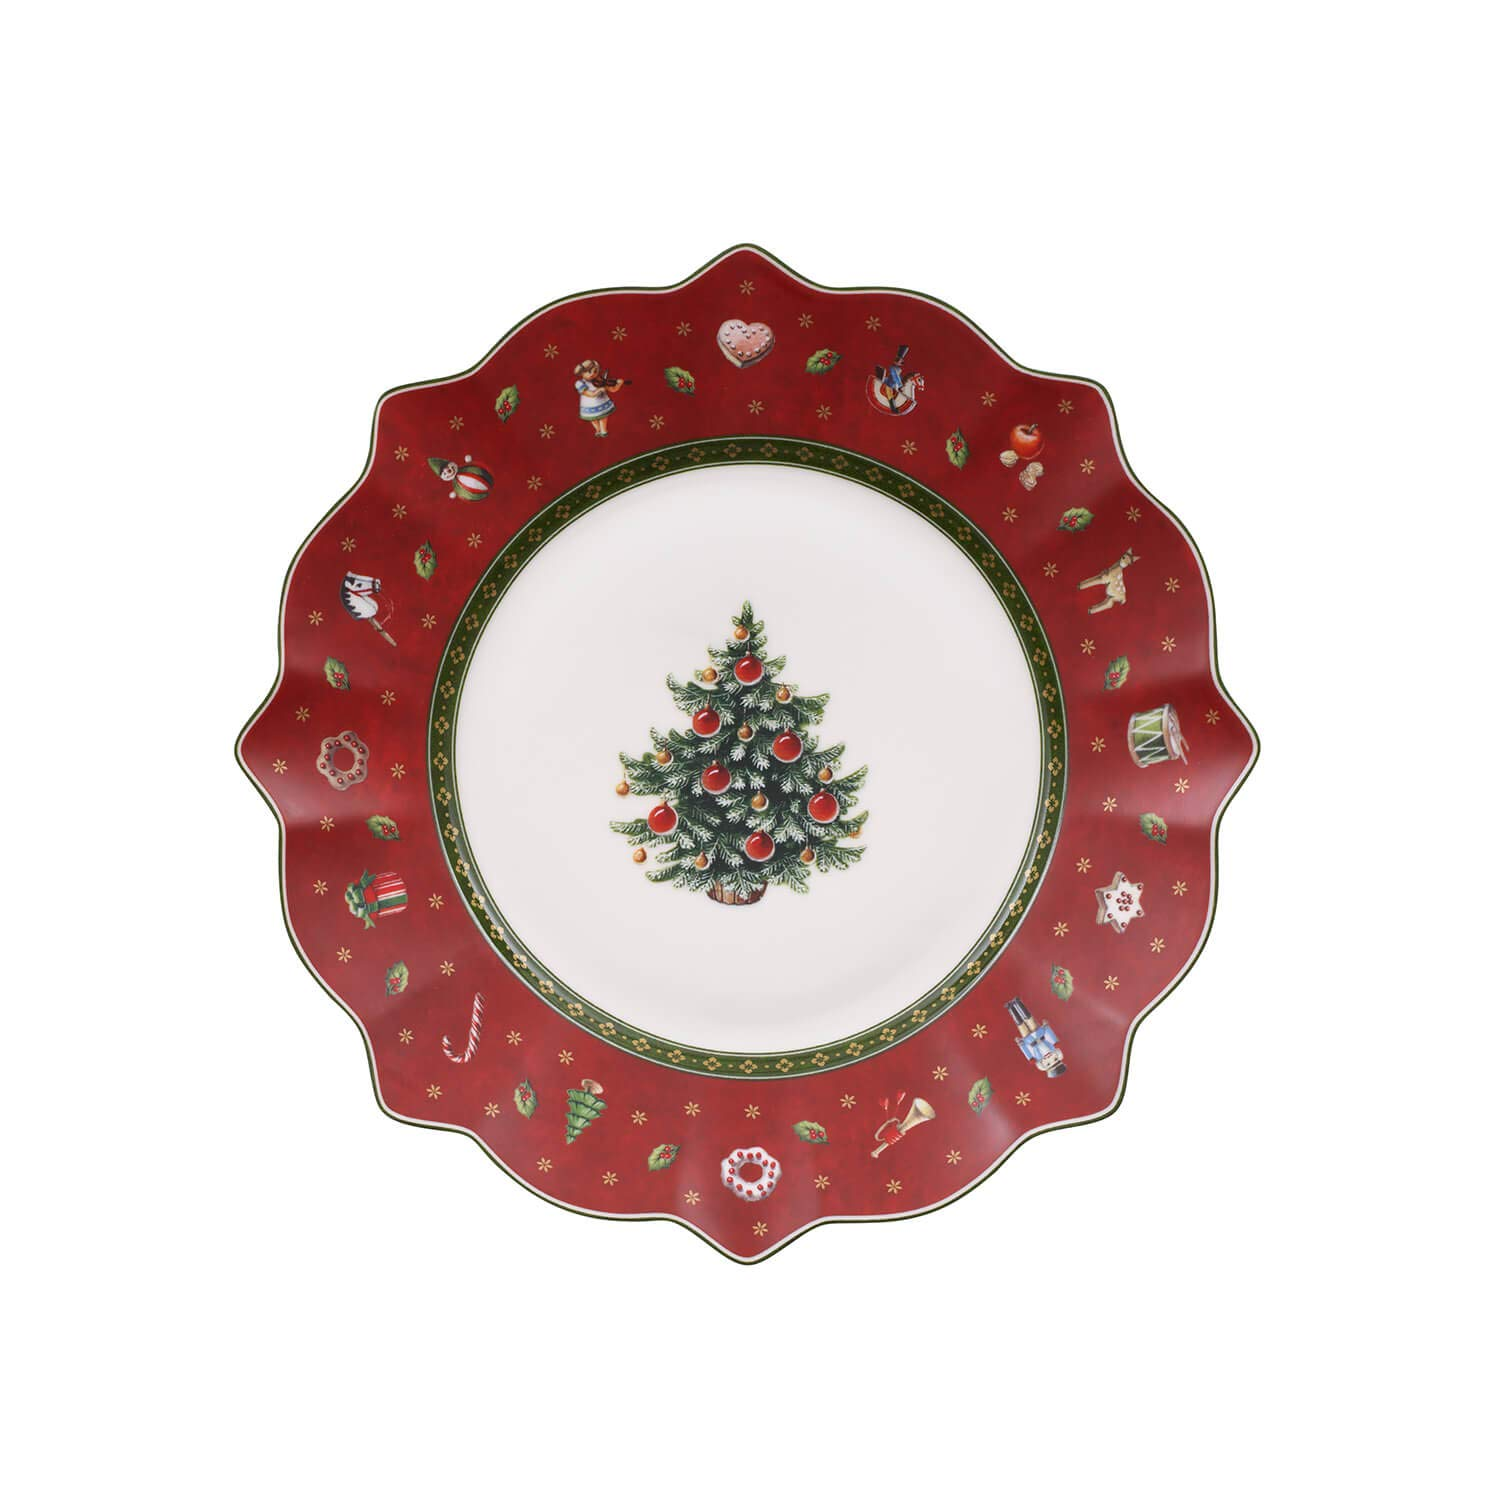 Villeroy & Boch Toy's Delight Salad Plate Red